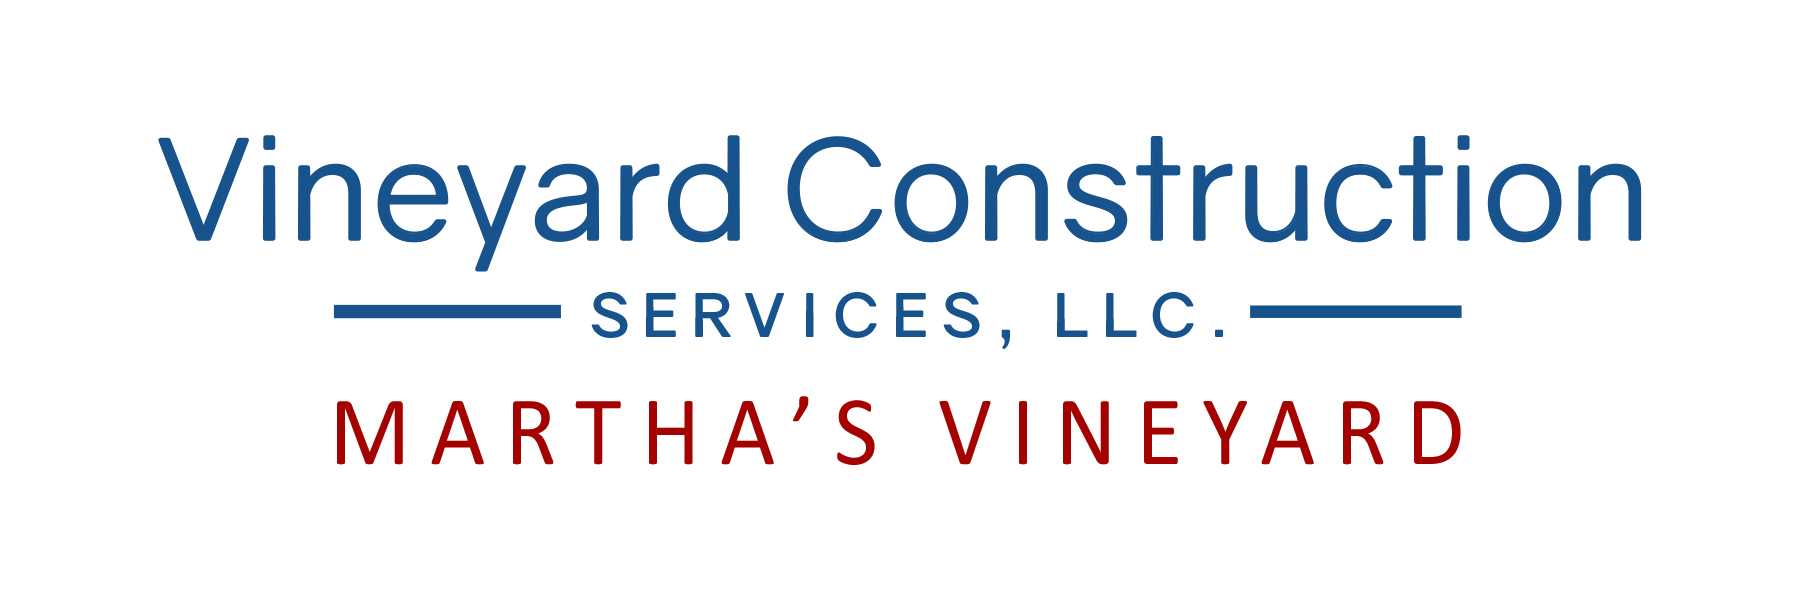 Vineyard Construction_Final_Logo.jpg